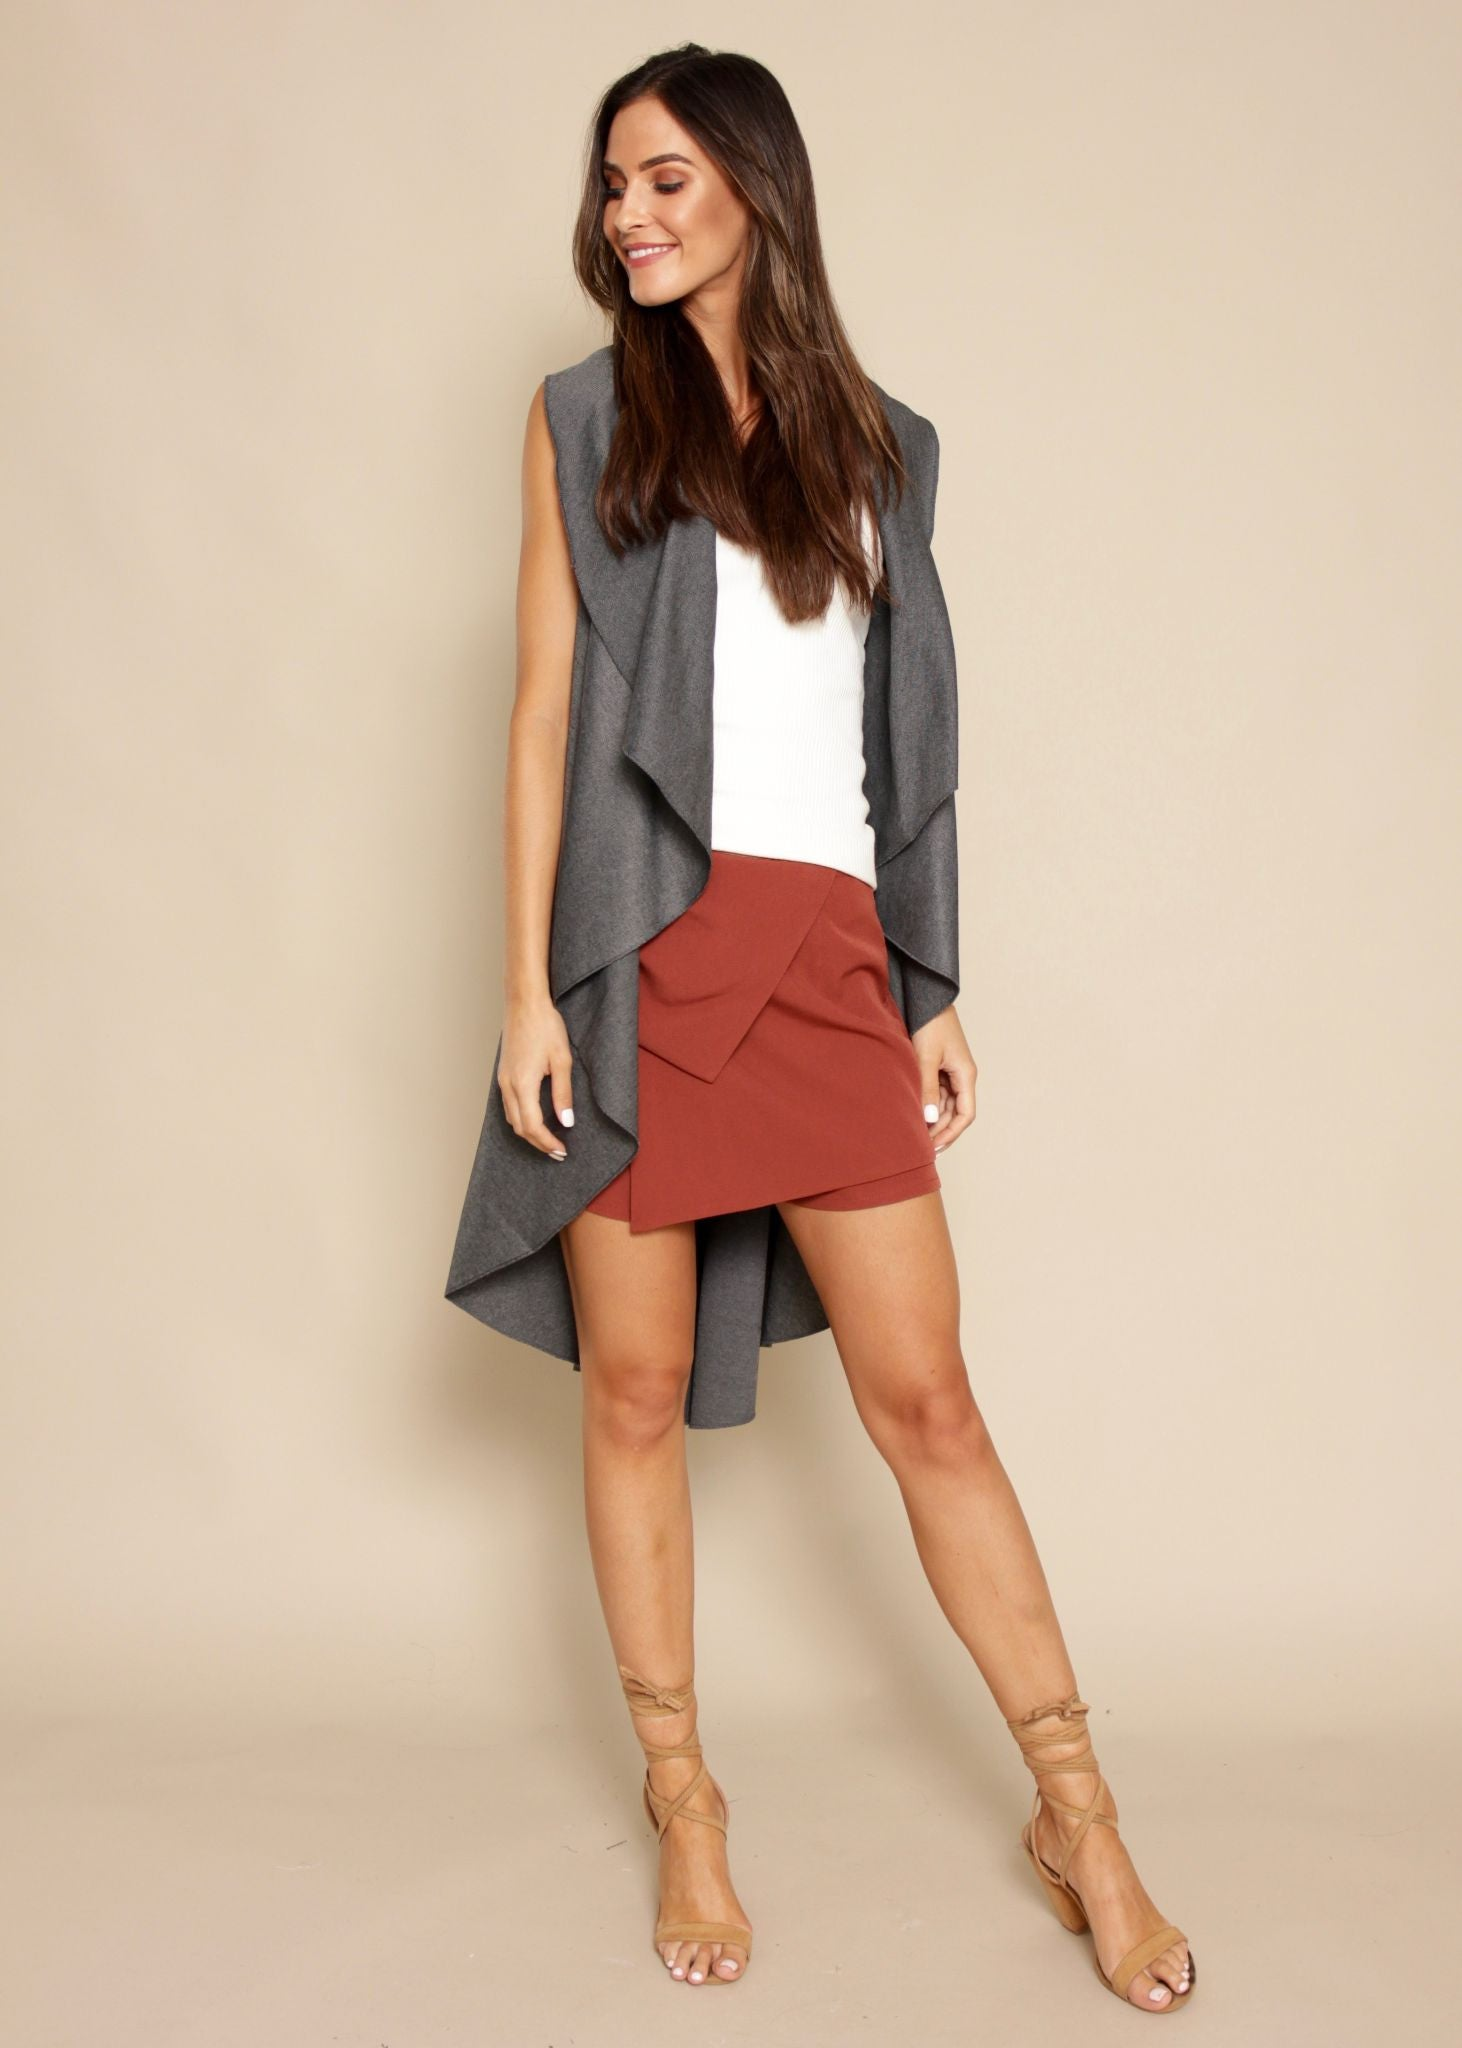 Bright Lights Sleeveless Cape - Grey Fleck